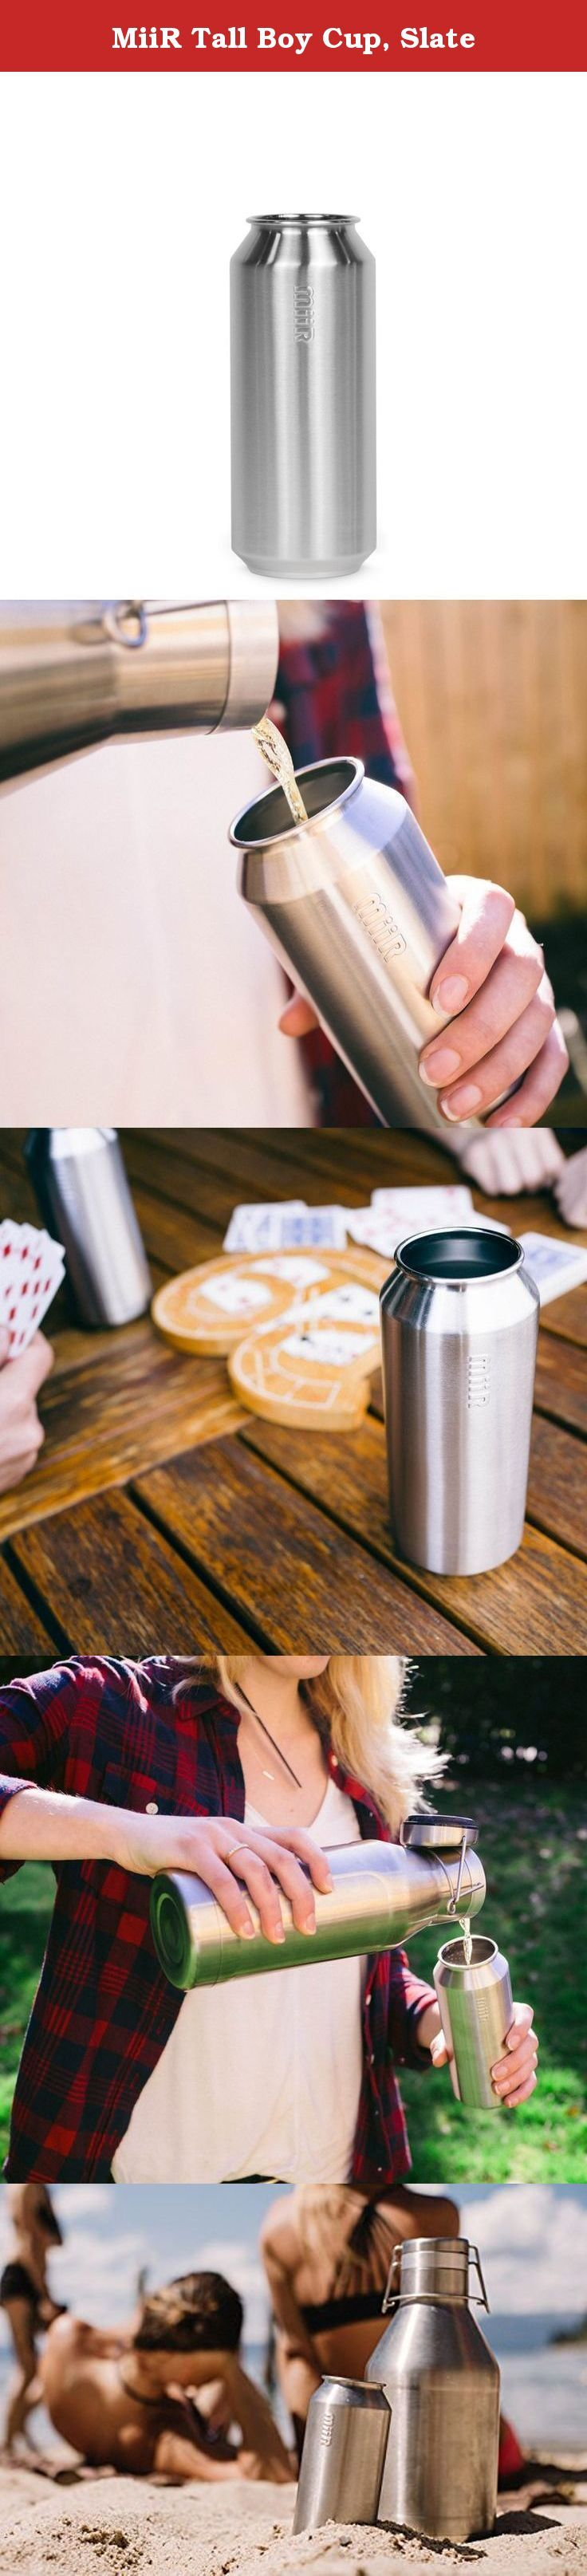 MiiR Tall Boy Cup, Slate. The MiiR Pint Cup is the perfect cup to take anywhere. The right size for any beverage, the durable stainless steel pint cup is ready for any adventure you care to invite it to.